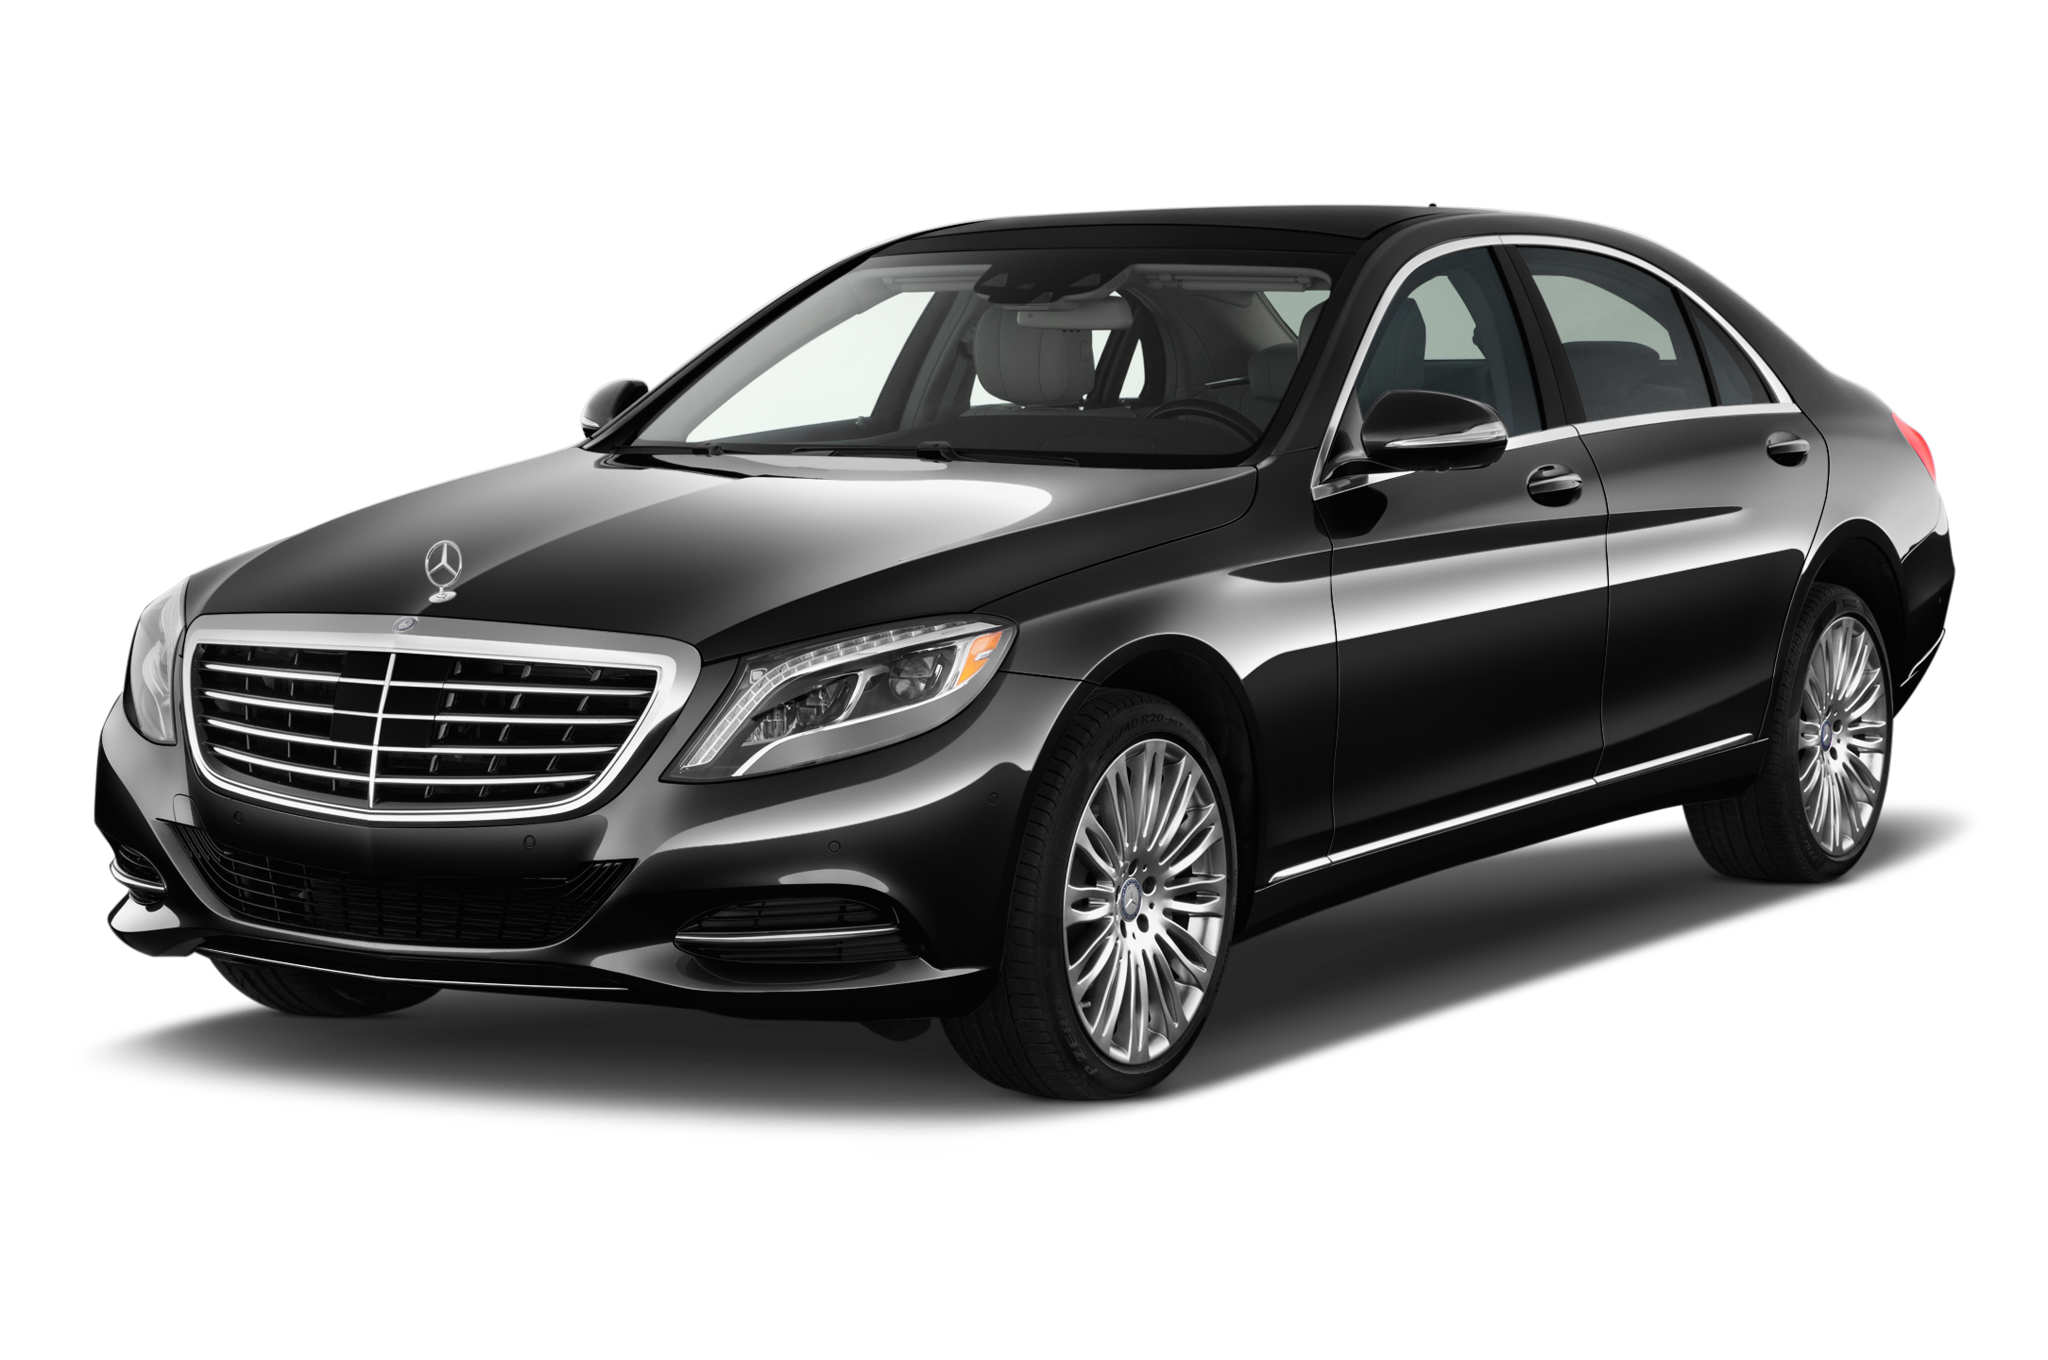 New MercedesBenz EClass Saloon Latest Car   sgCarMart